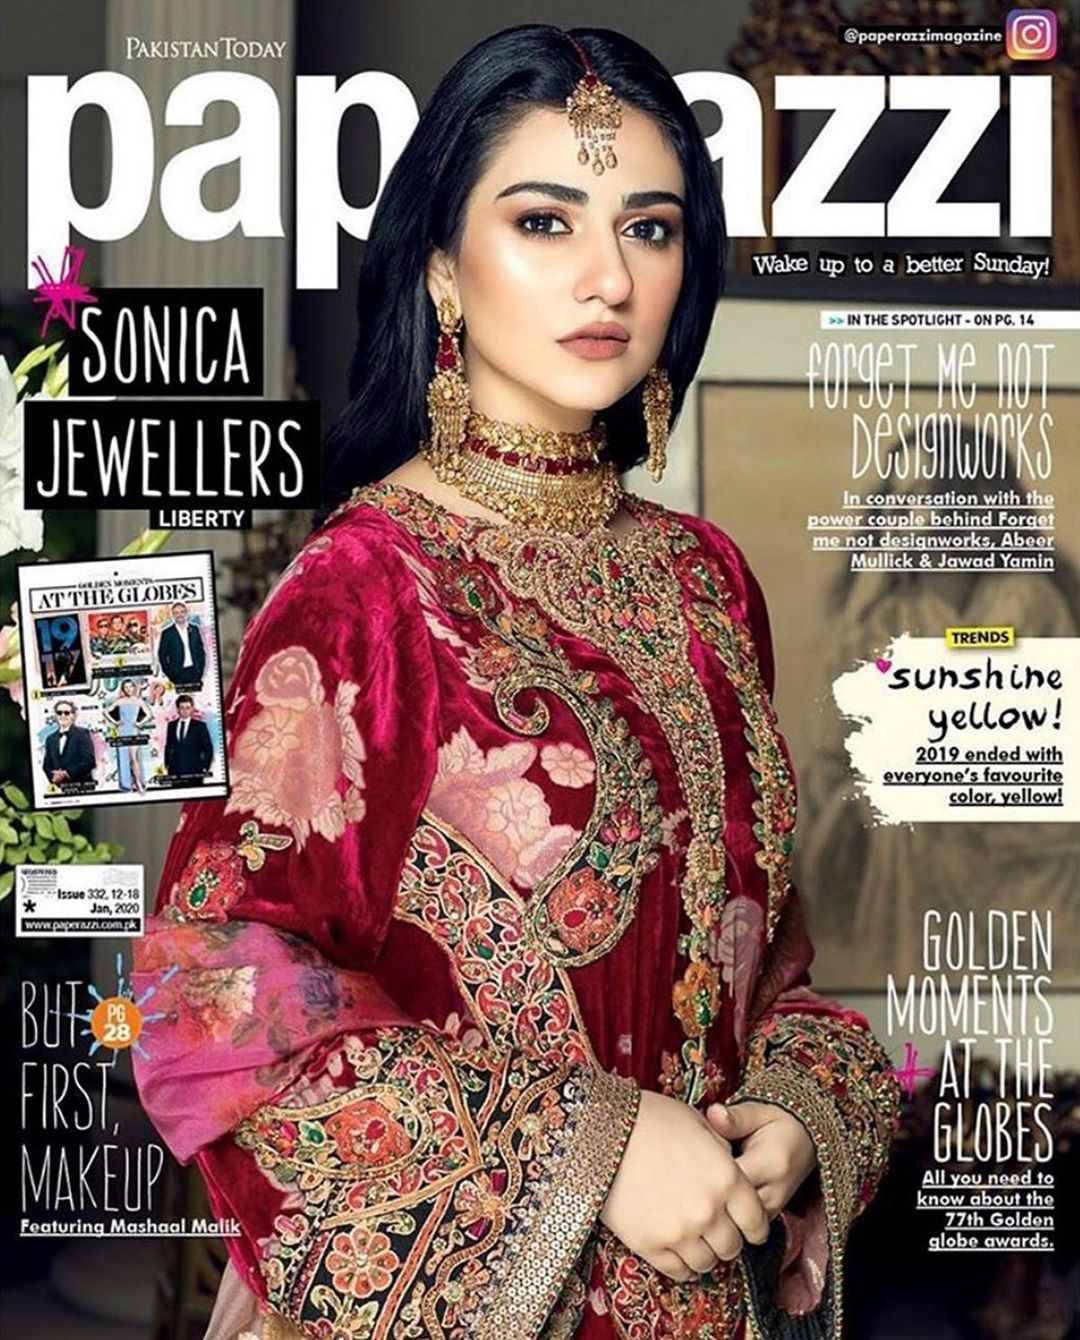 Sarah Khan on the cover of Paprazzi magazine